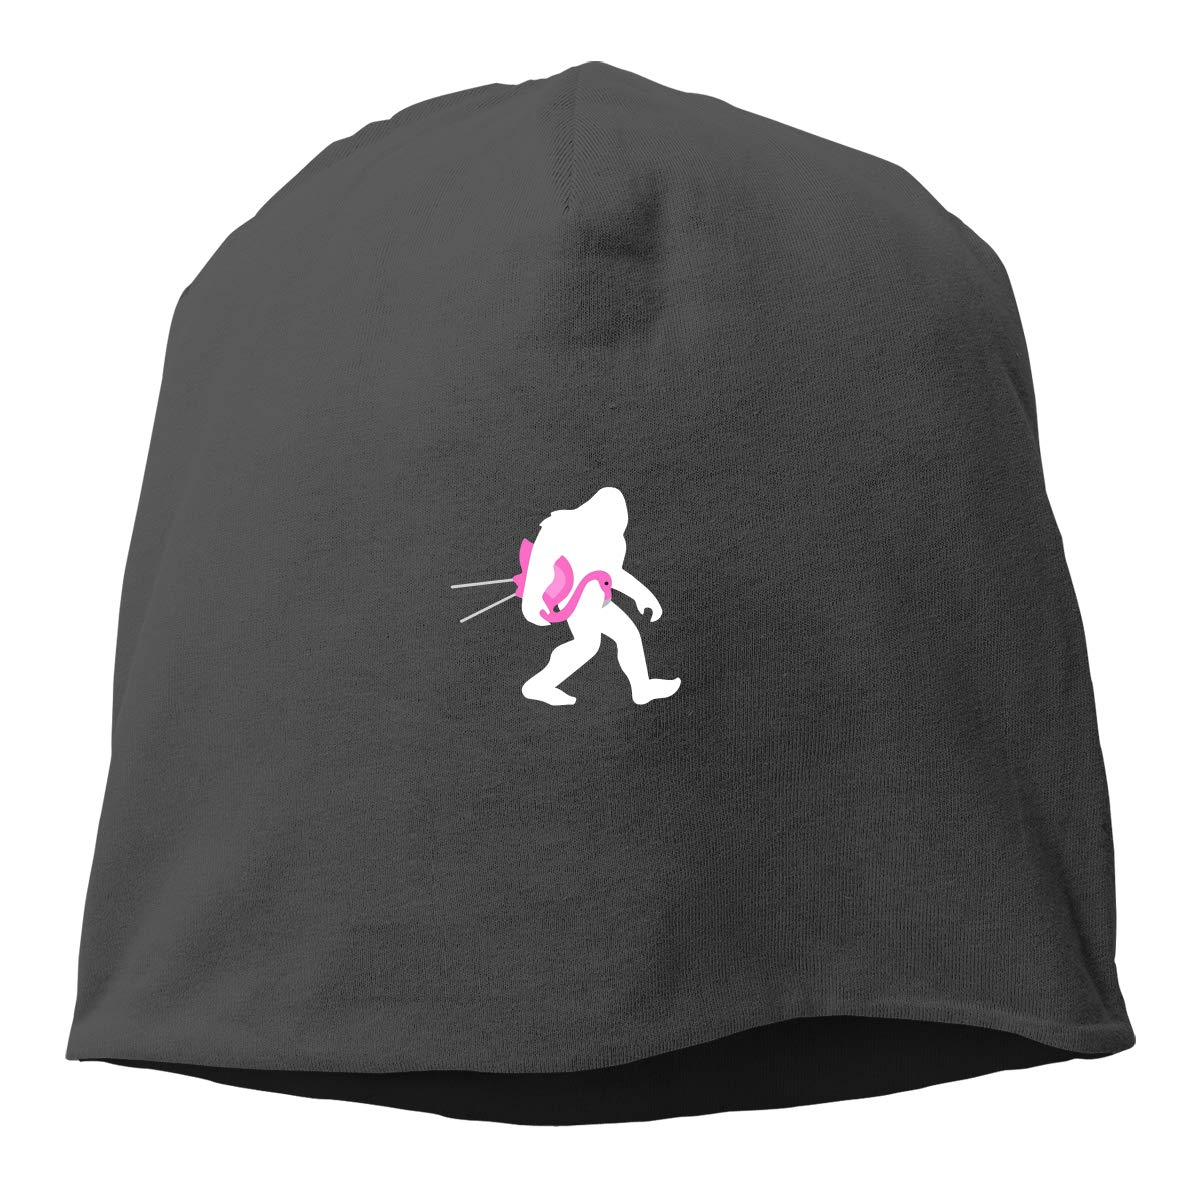 Bigfoot and Lawn Flamingo Fashion Knitted Hat Warm Soft Beanie Cap